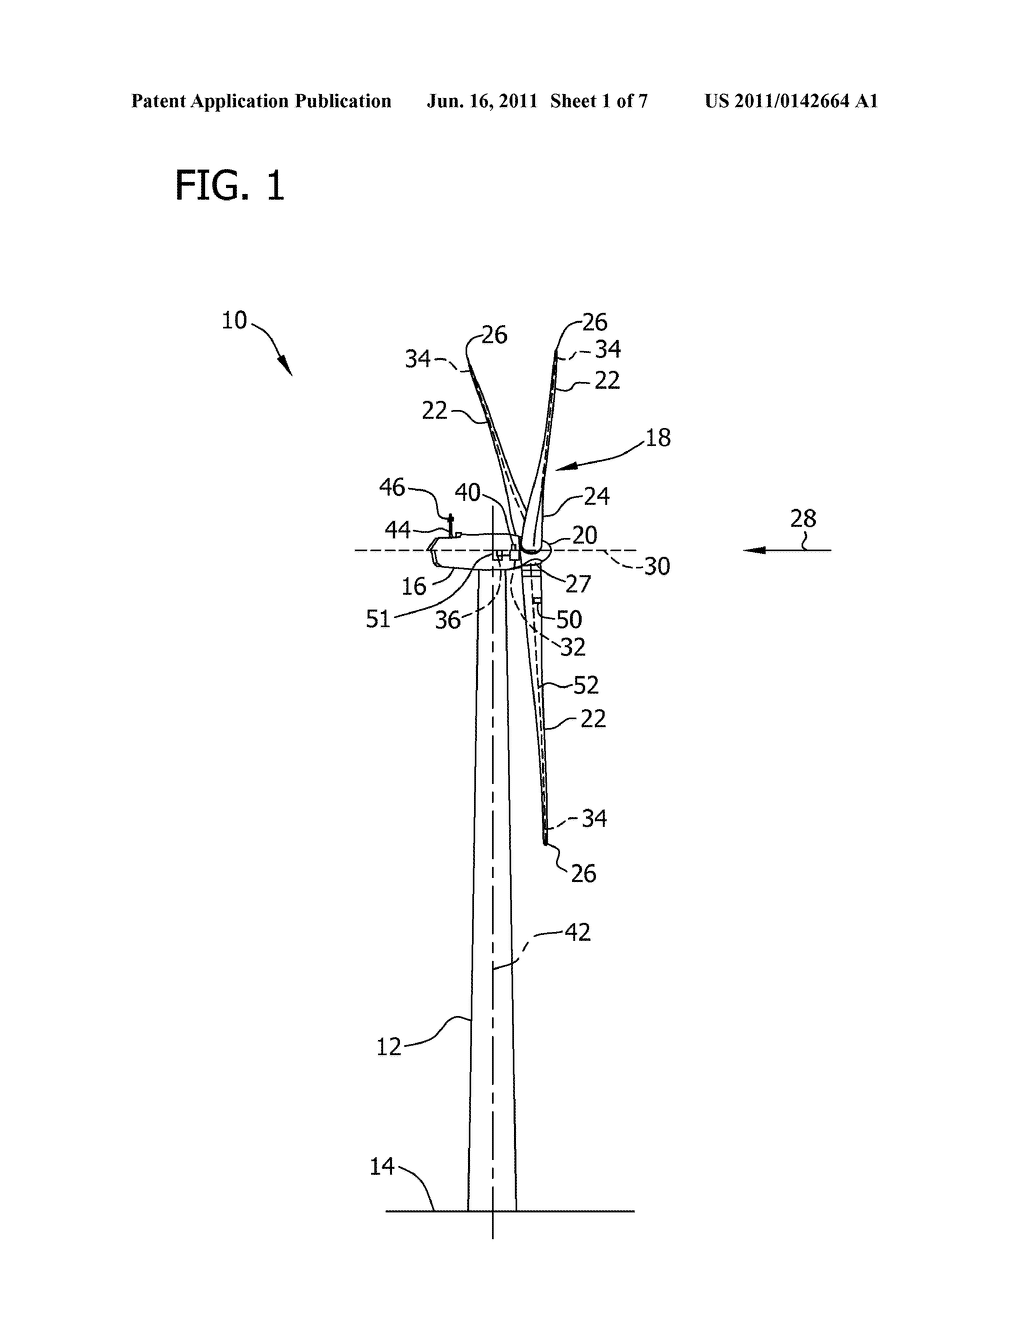 VORTEX GENERATOR ASSEMBLY FOR USE WITH A WIND TURBINE ROTOR BLADE